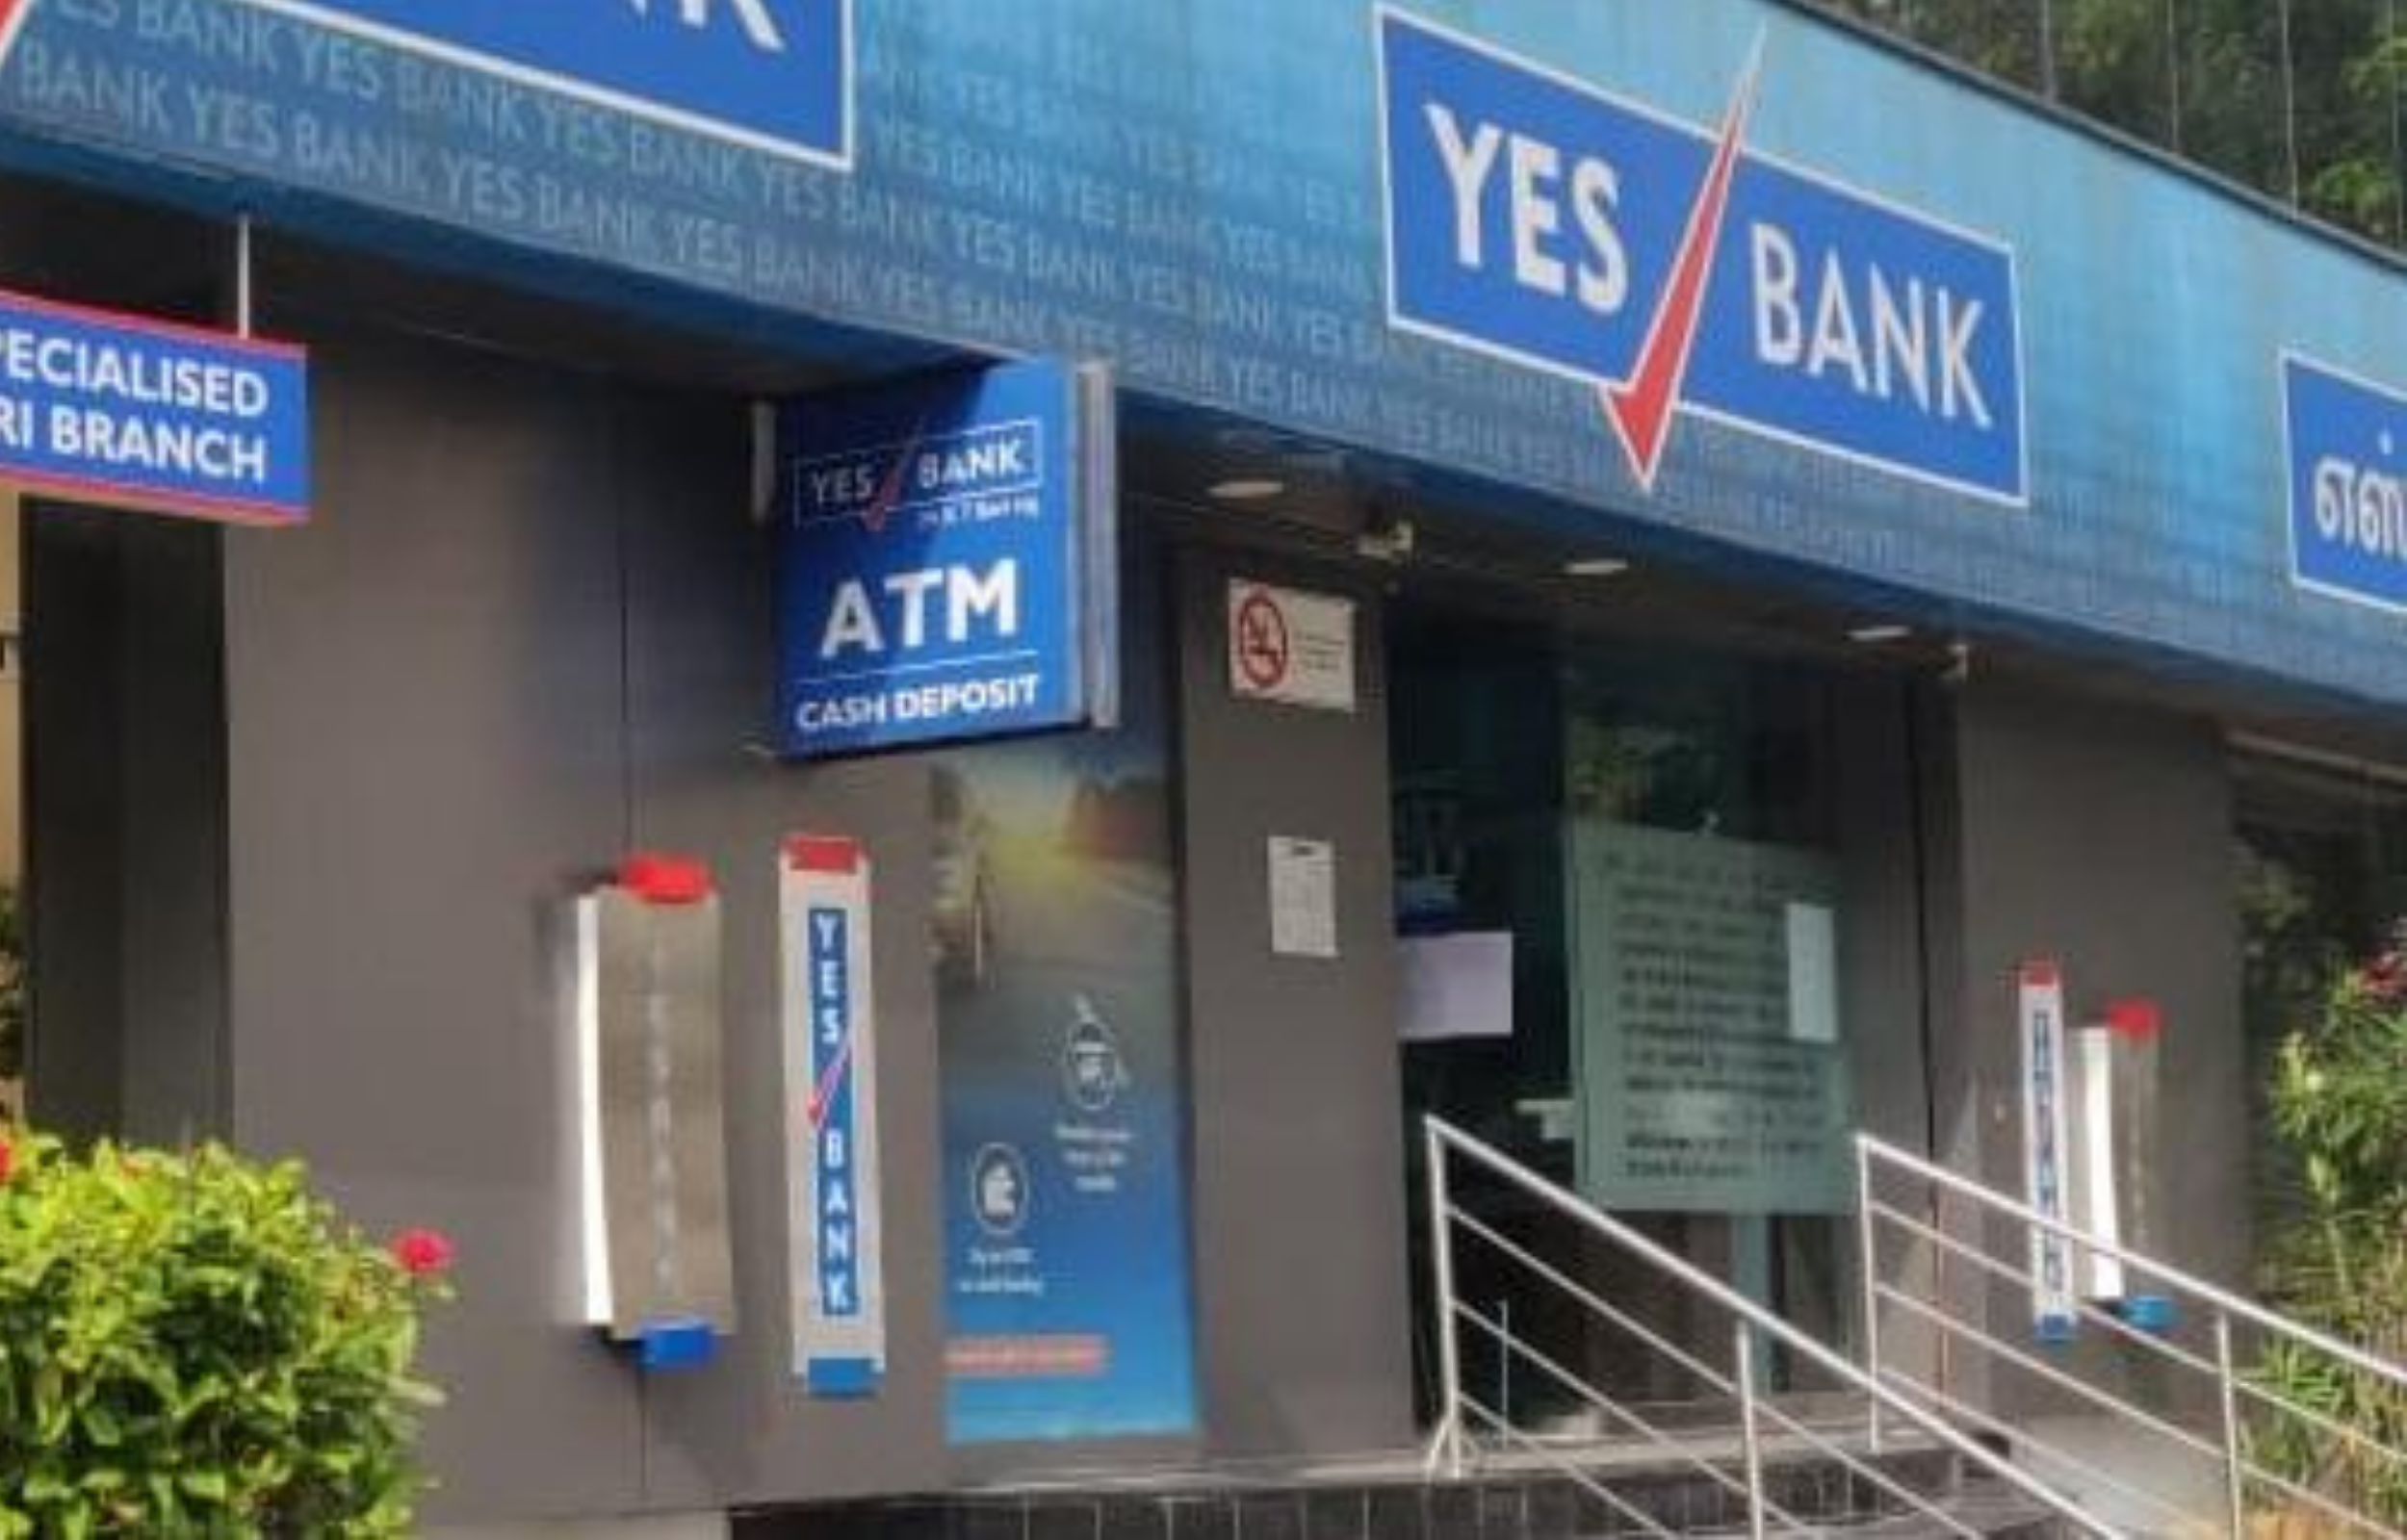 Yes Bank reports showed Q2 profit at Rs 129 crore NII falls to 9.7 percent